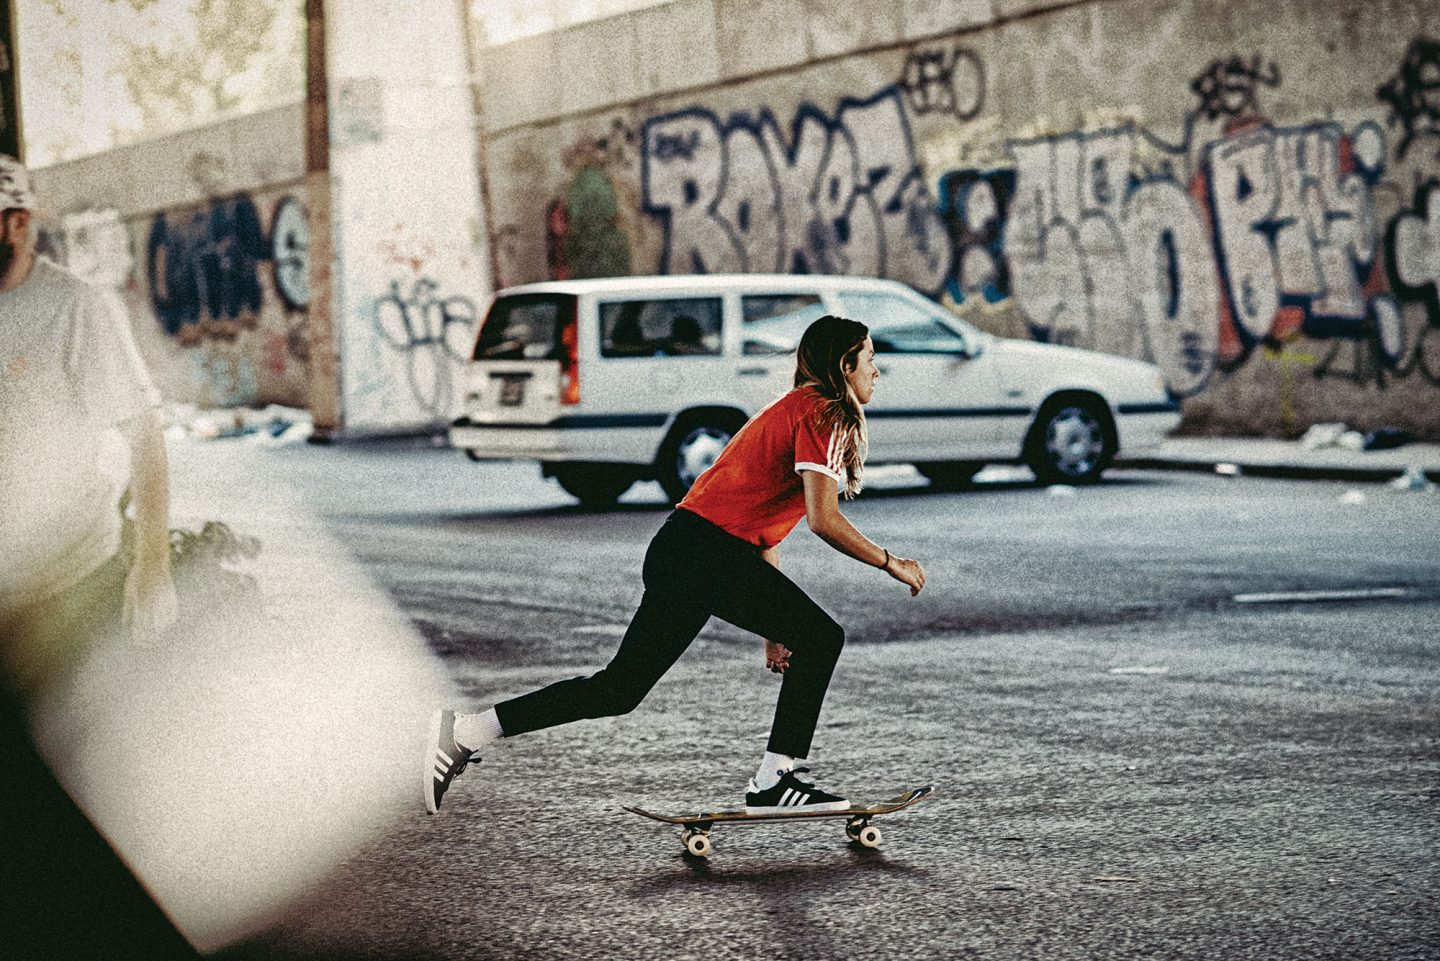 Girl skateboarding through the street. Skate board. Skater. GamePlan A.